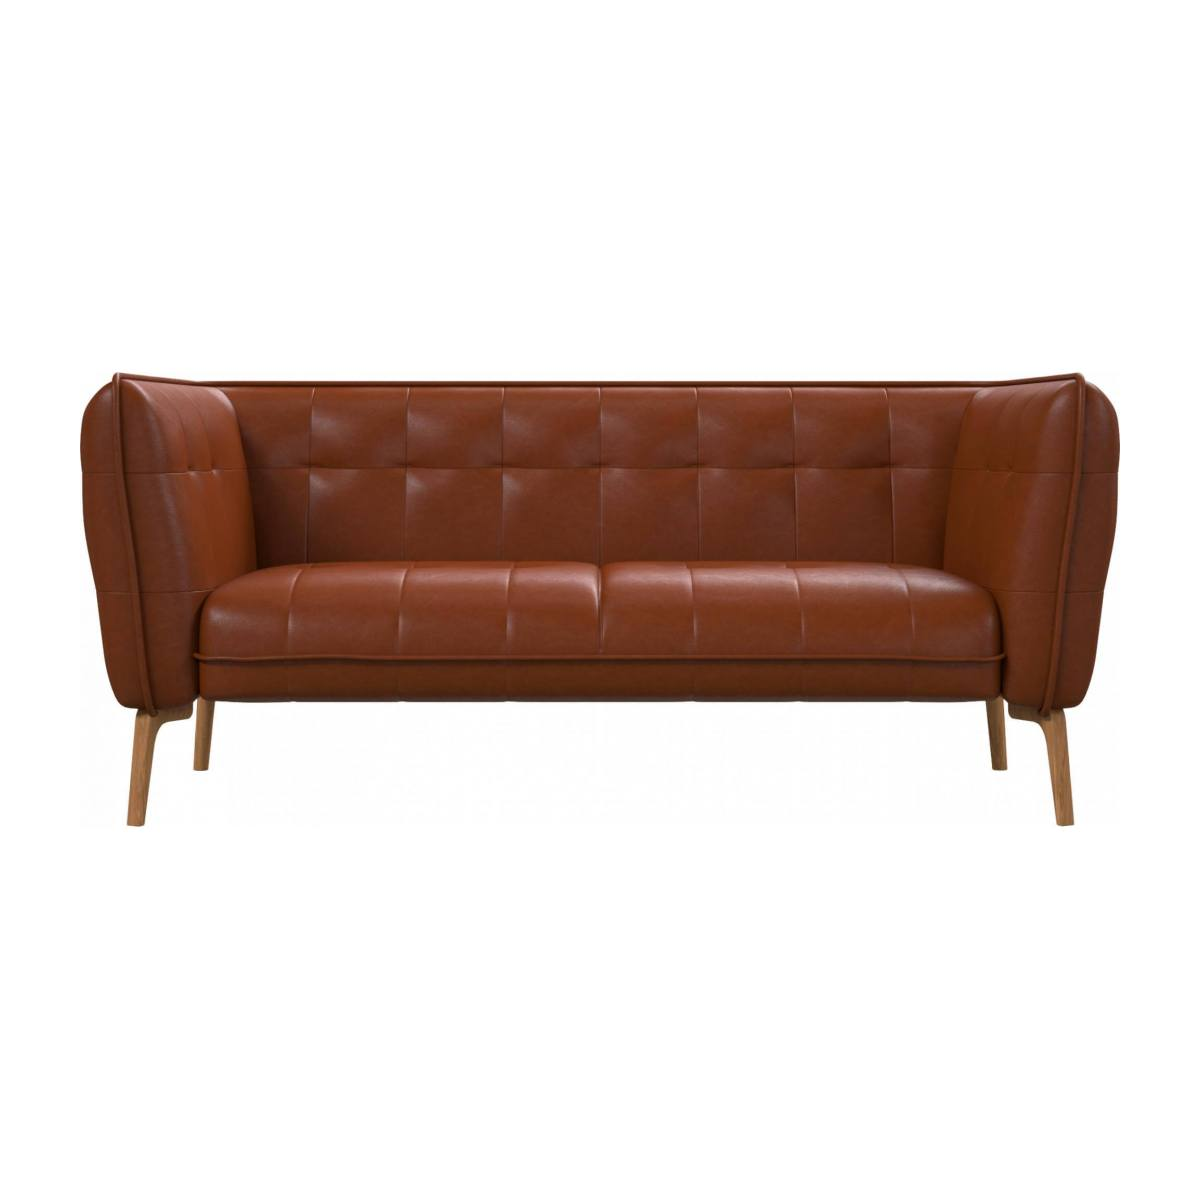 2 seater sofa in Vintage aniline leather, old chestnut and natural oak feet n°1